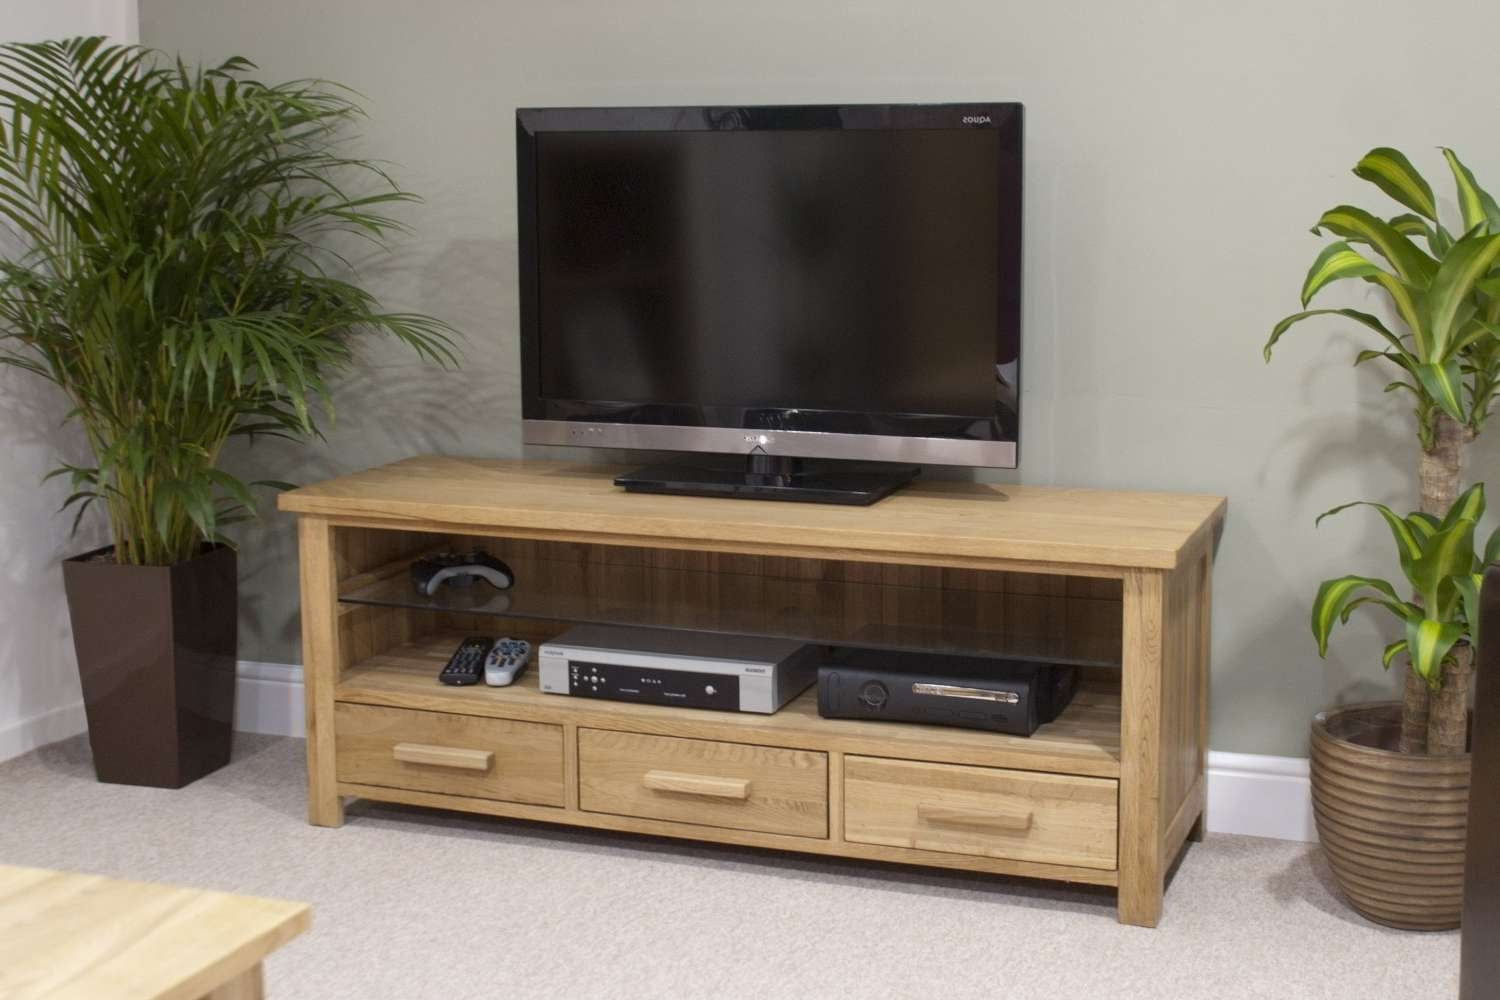 Eton Solid Oak Living Room Furniture Widescreen Tv Cabinet Stand Intended For Wide Screen Tv Stands (View 12 of 15)